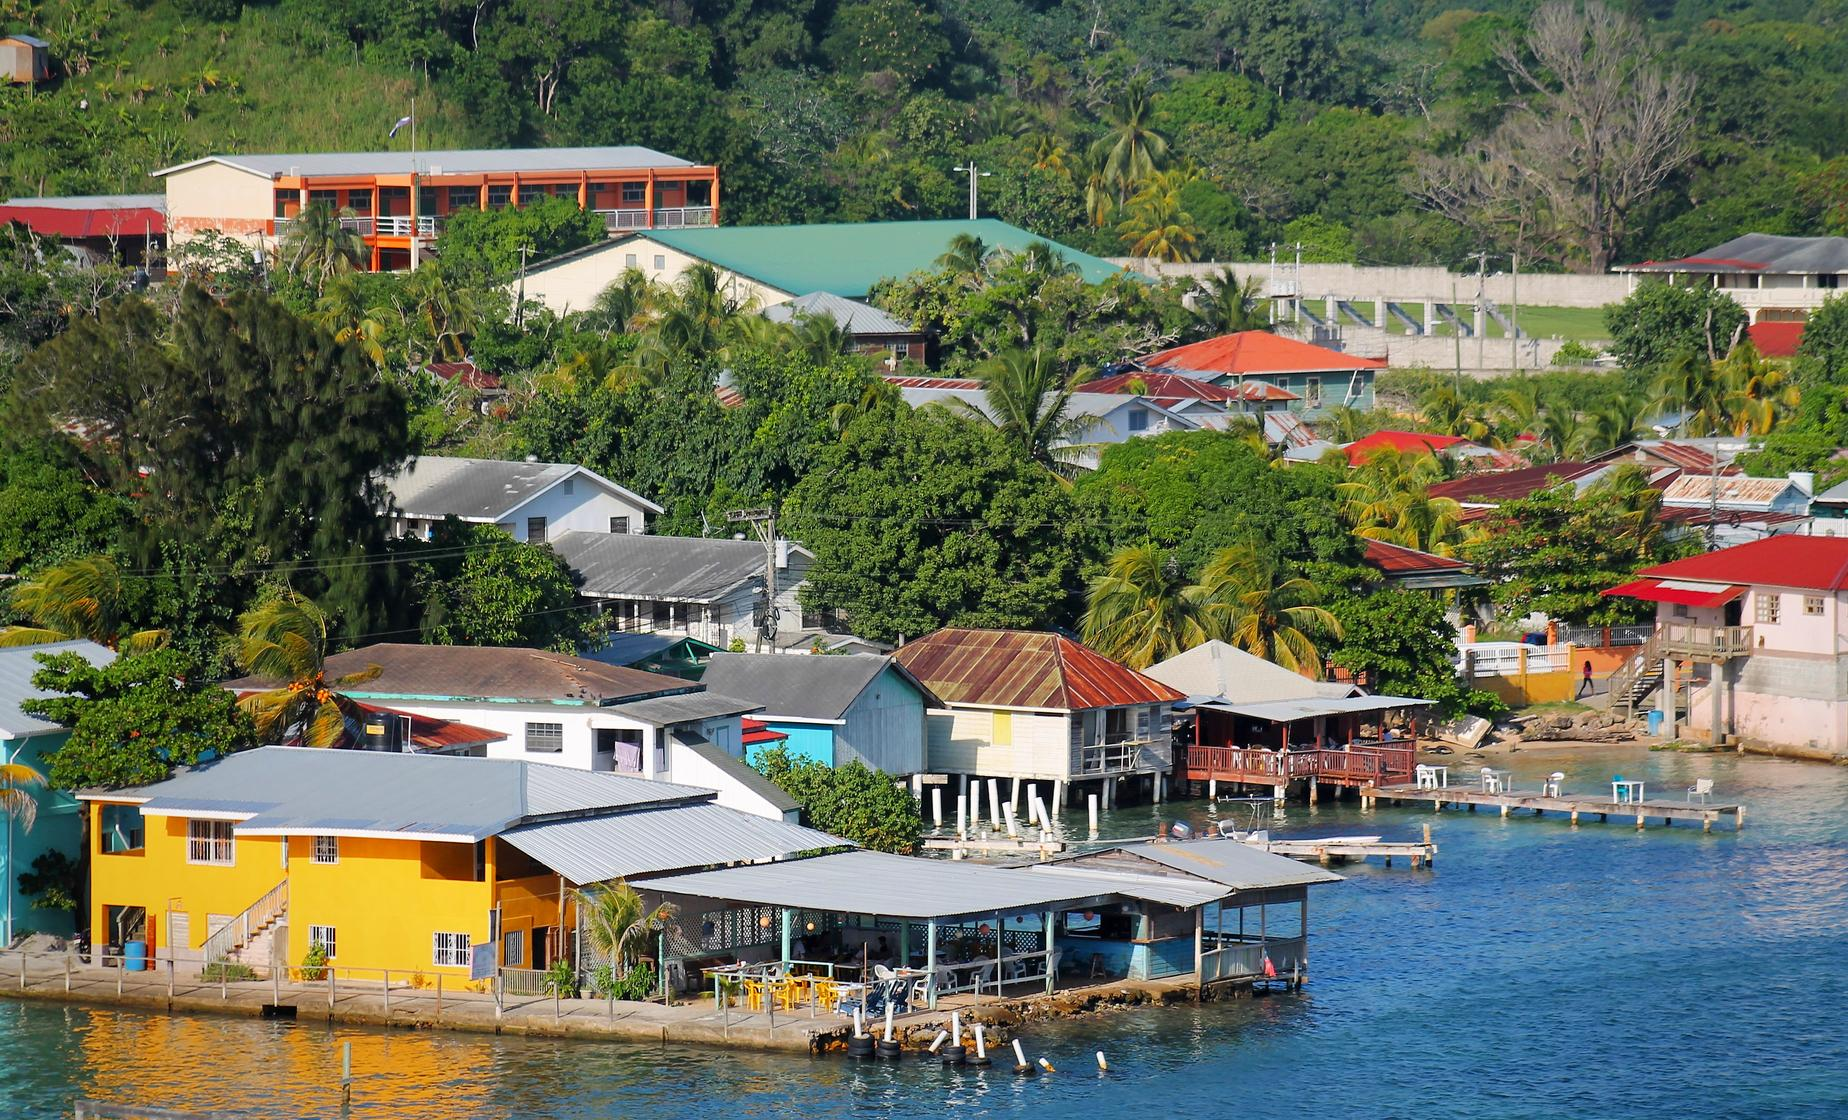 A View of Roatan Highlights with Chocolate and Rum Factory